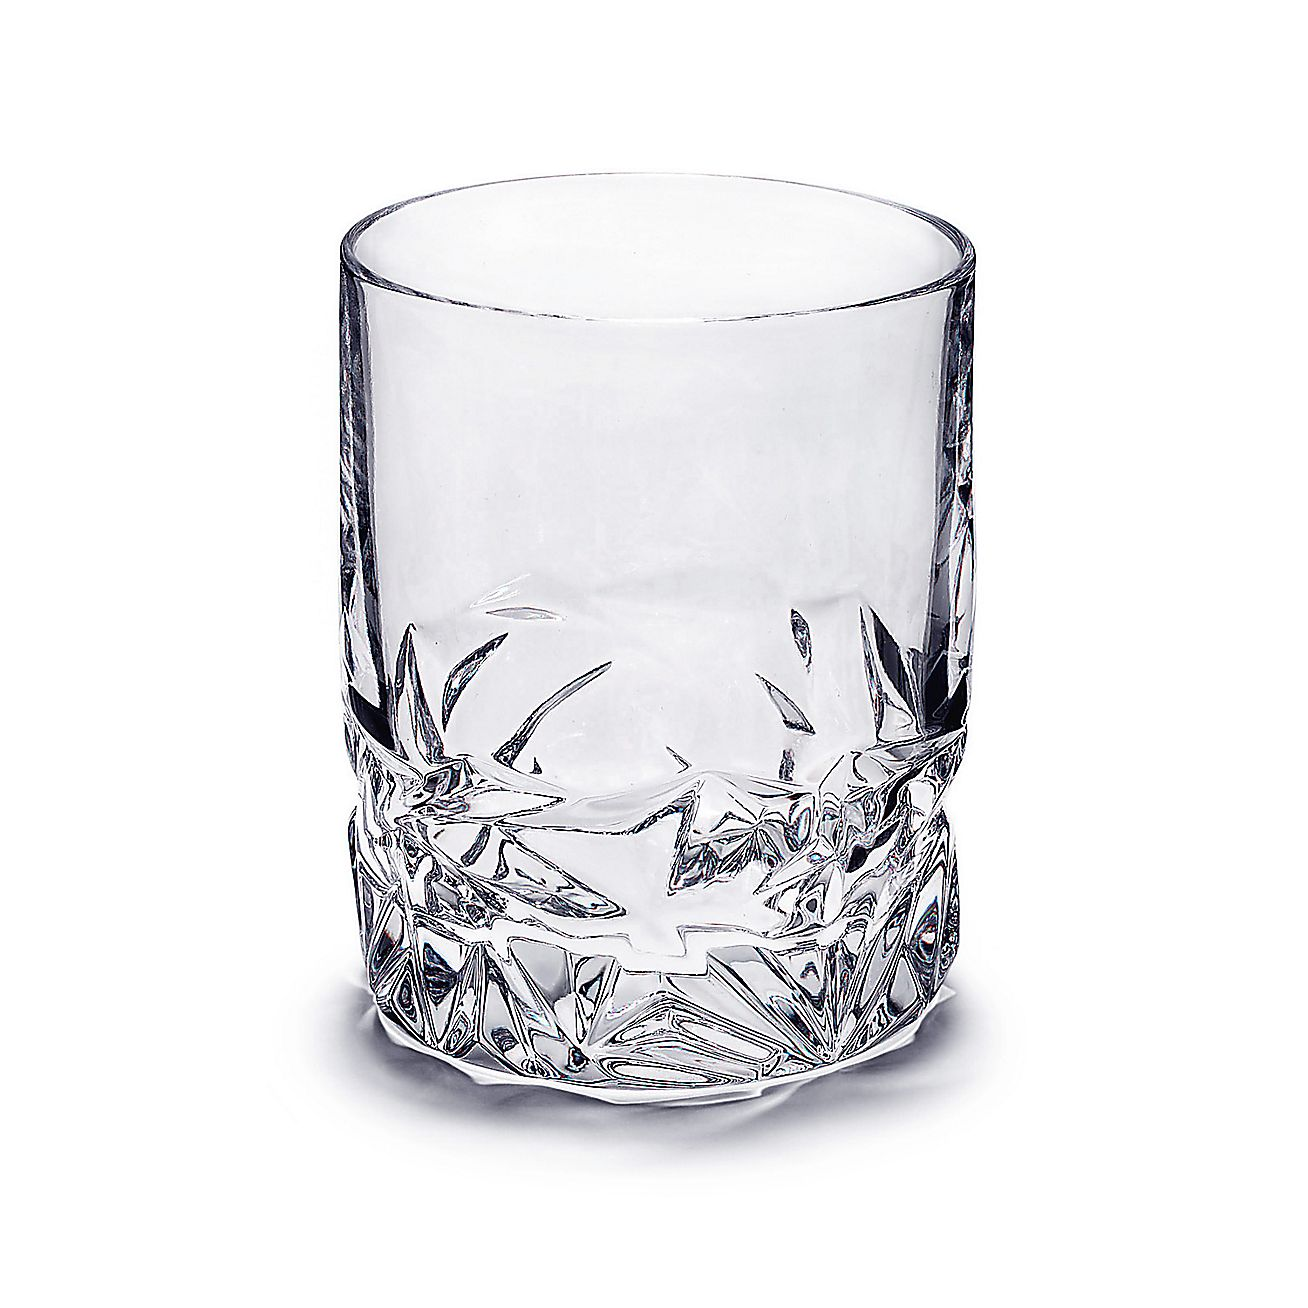 Double Strength Glass Cutting : Rock cut double old fashioned glass in crystal tiffany